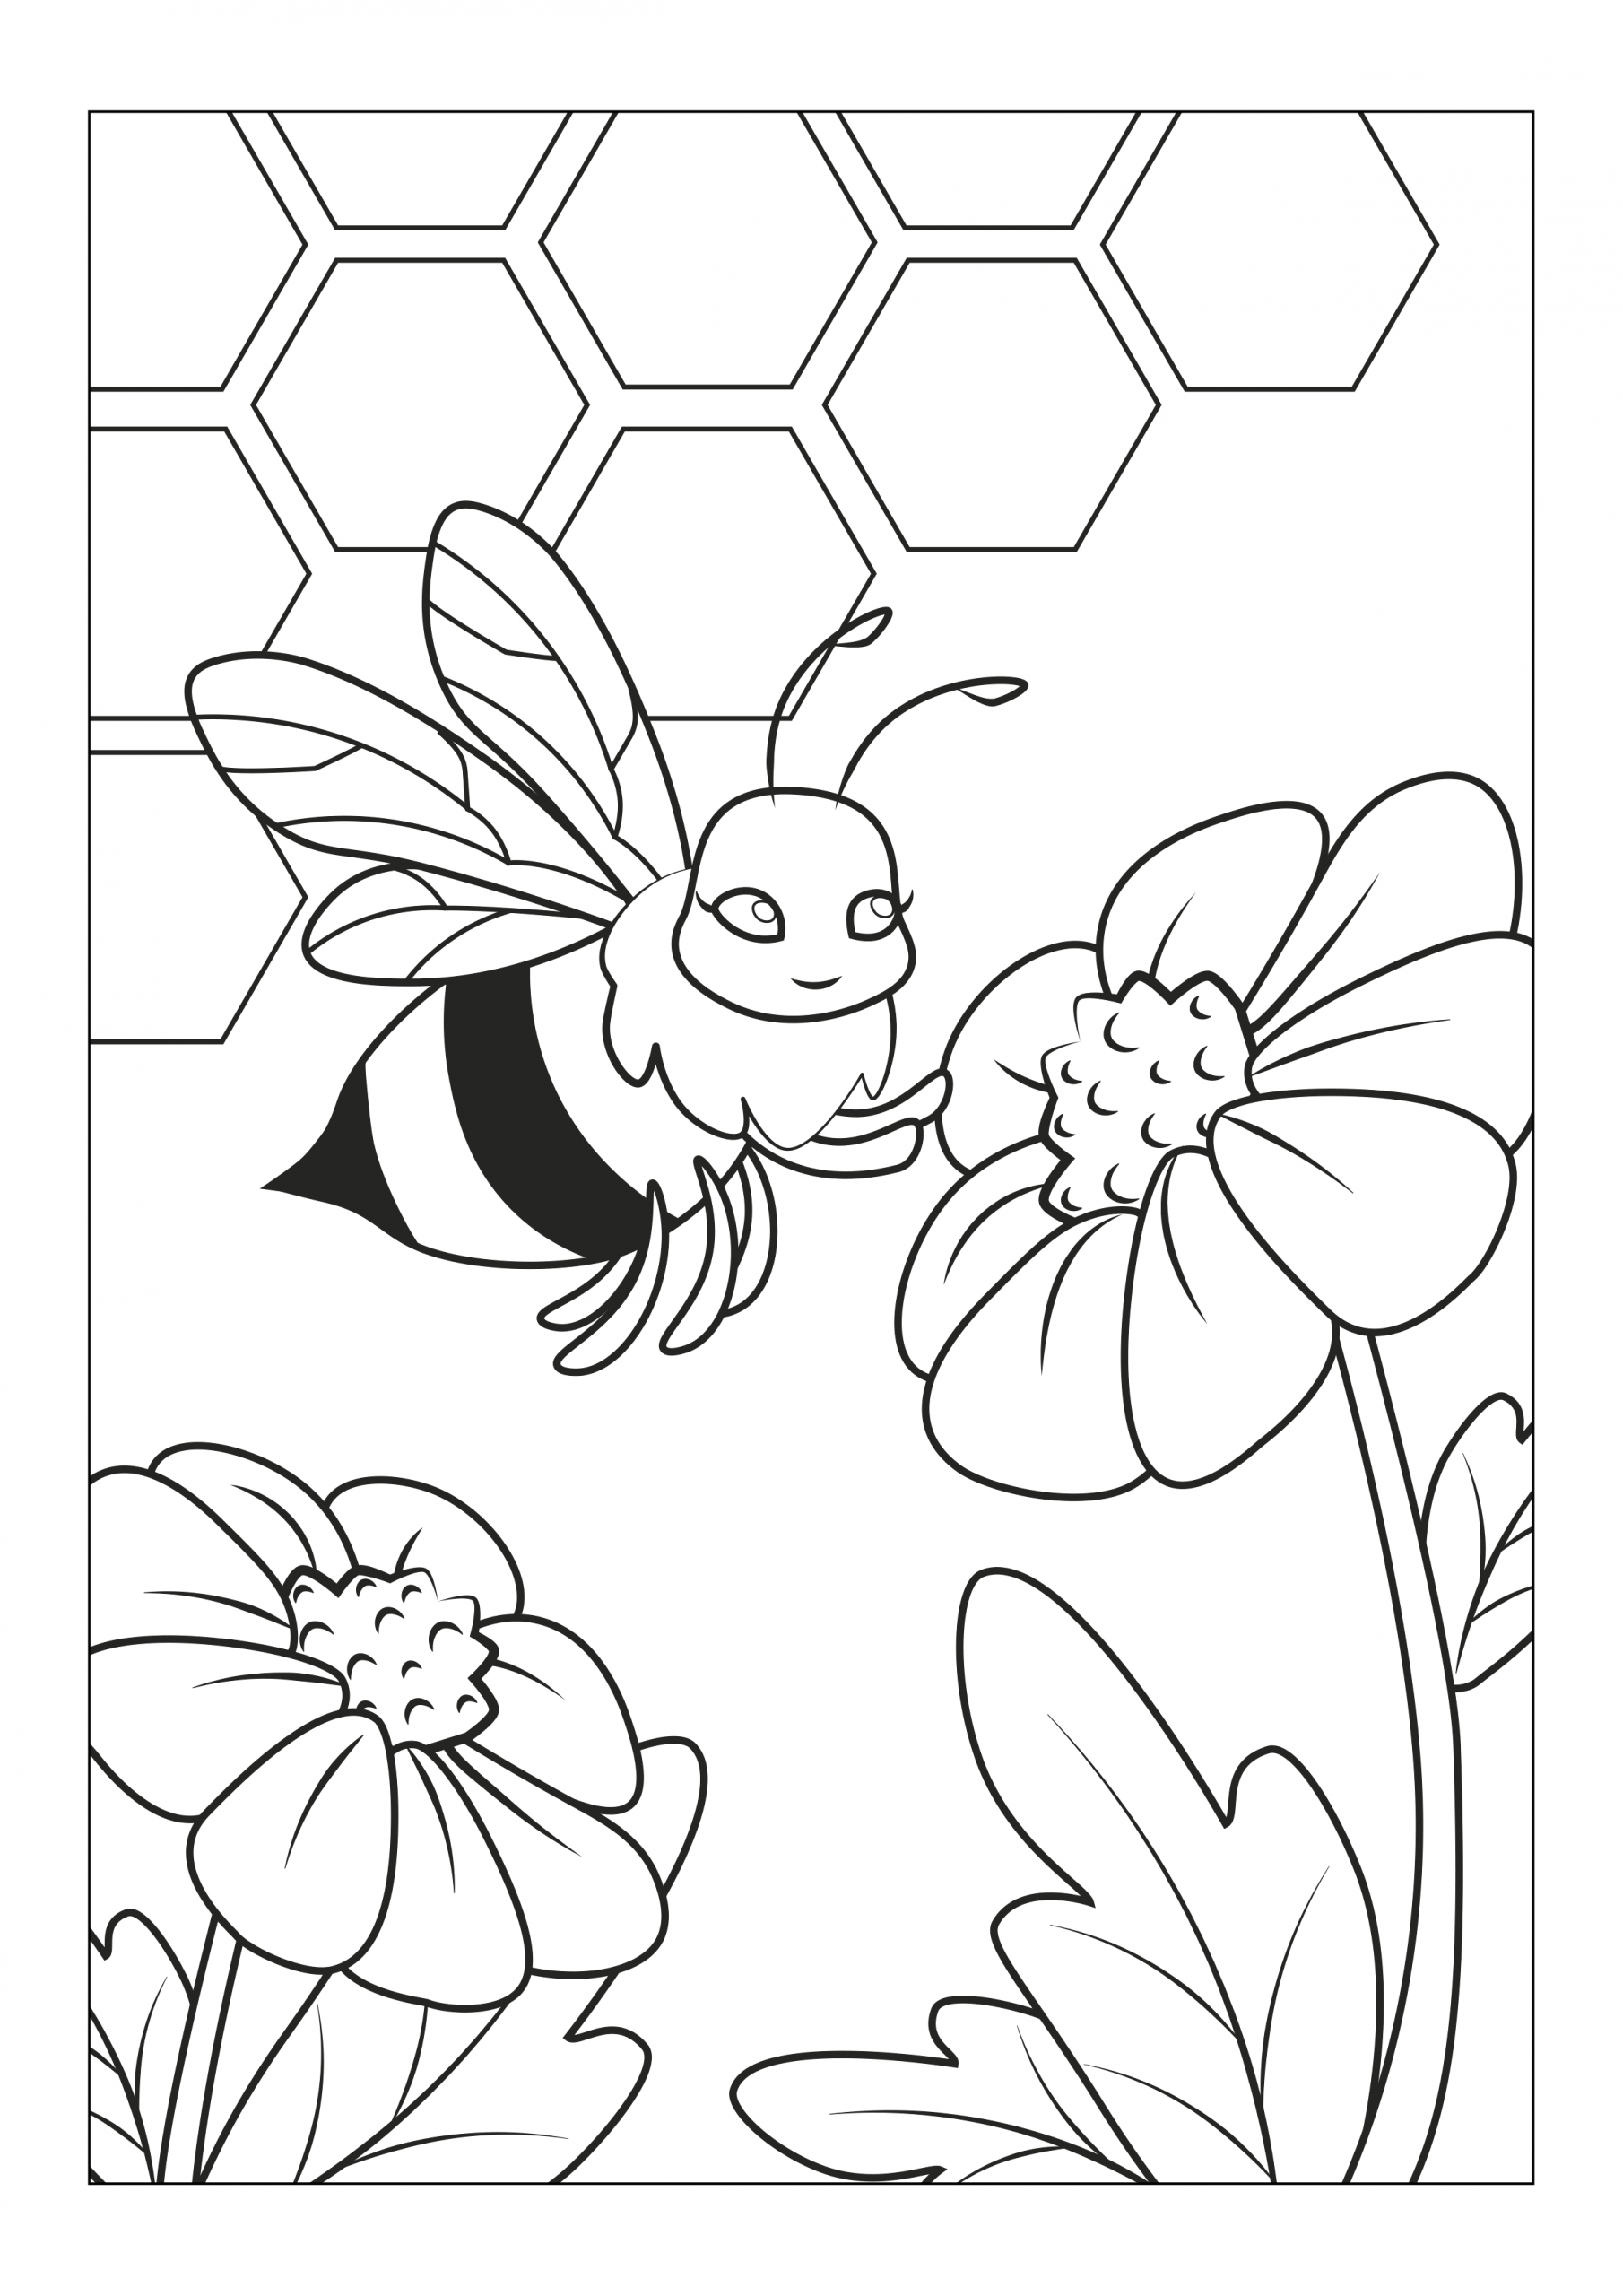 Free Online Coloring Pages to Color Online Free Line Coloring Pages with Super Cool Bugs